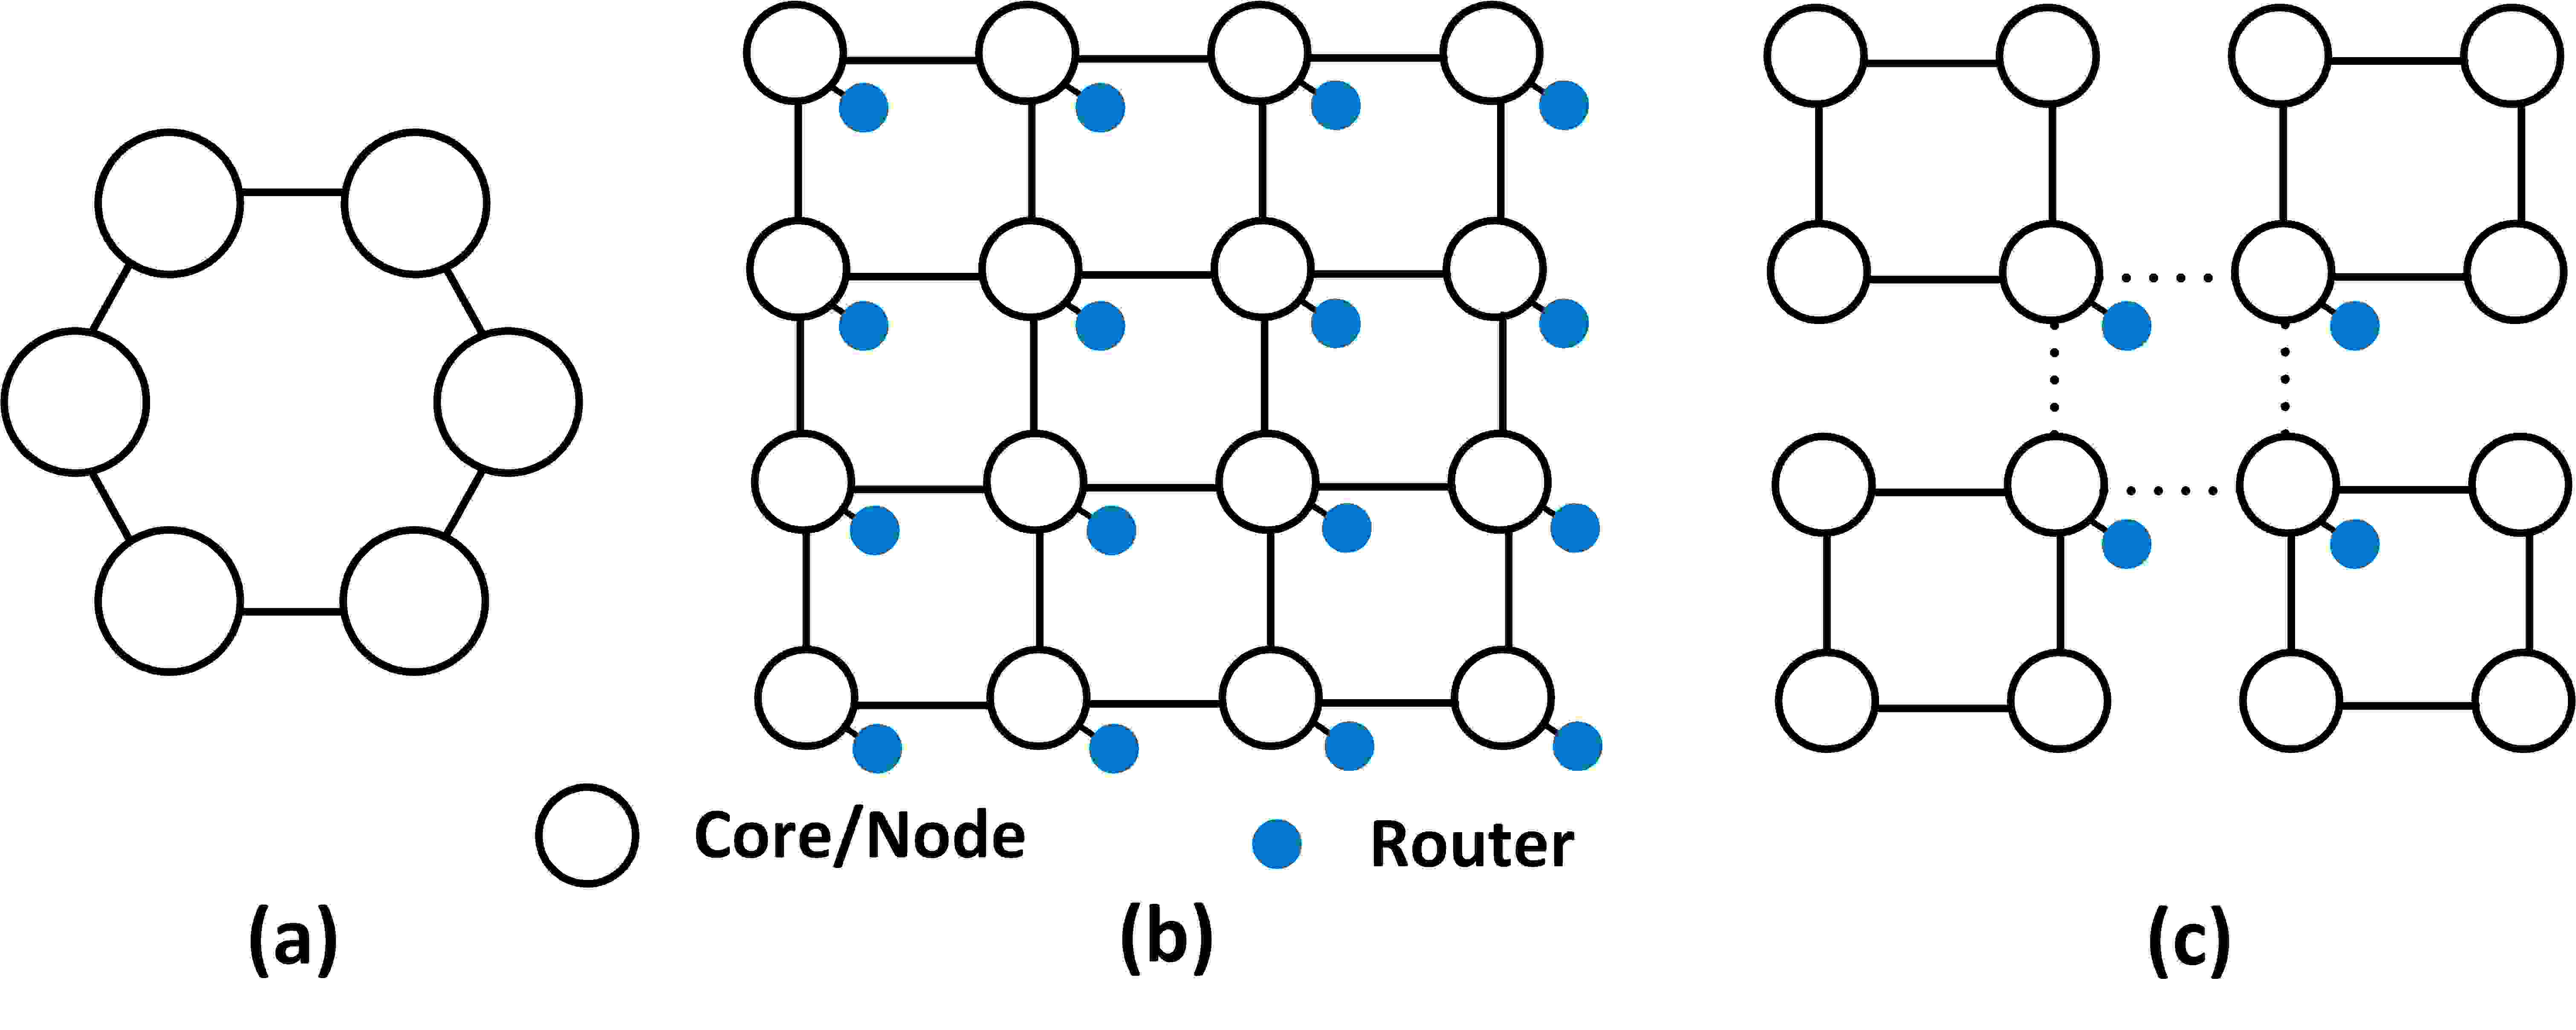 Optimizing Routerless Network-on-Chip Designs: An Innovative